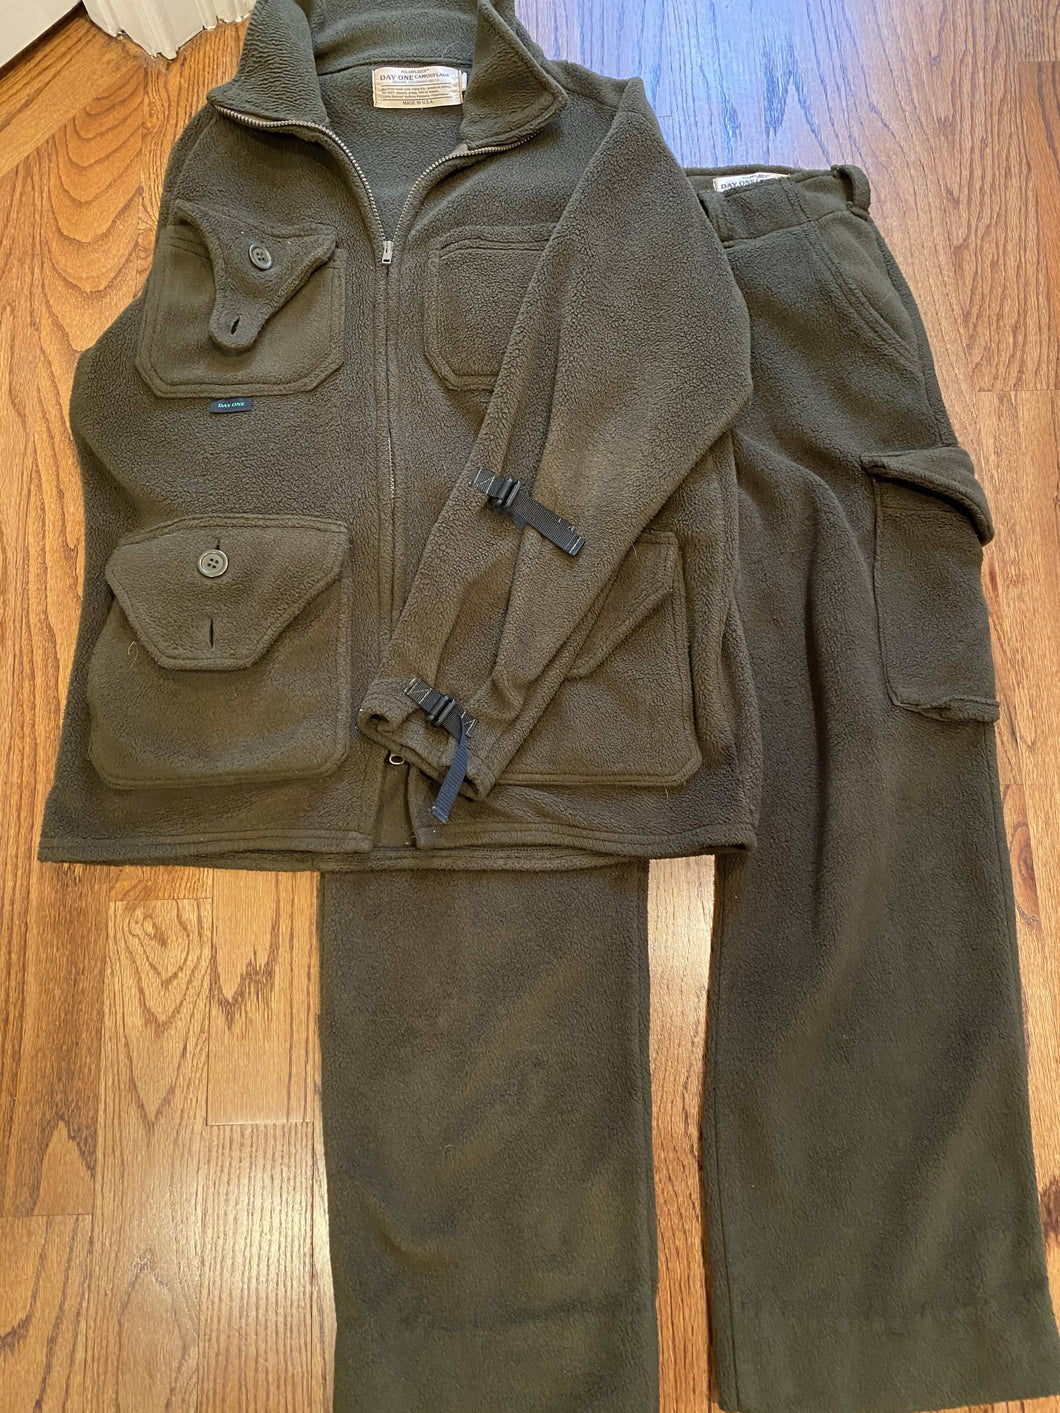 Day One Camouflage Polar Fleece Shirt and Pants (L)